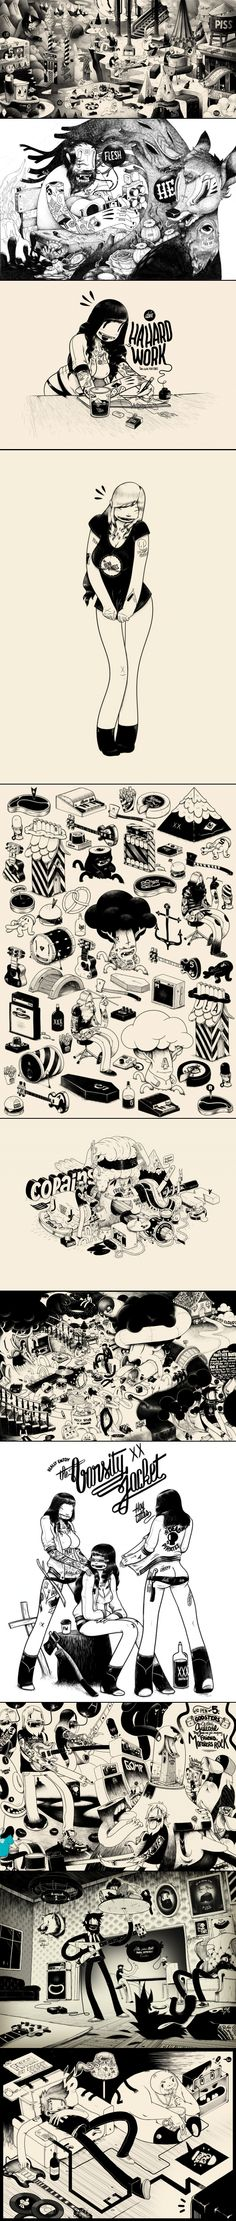 mcbess comic book #illustration